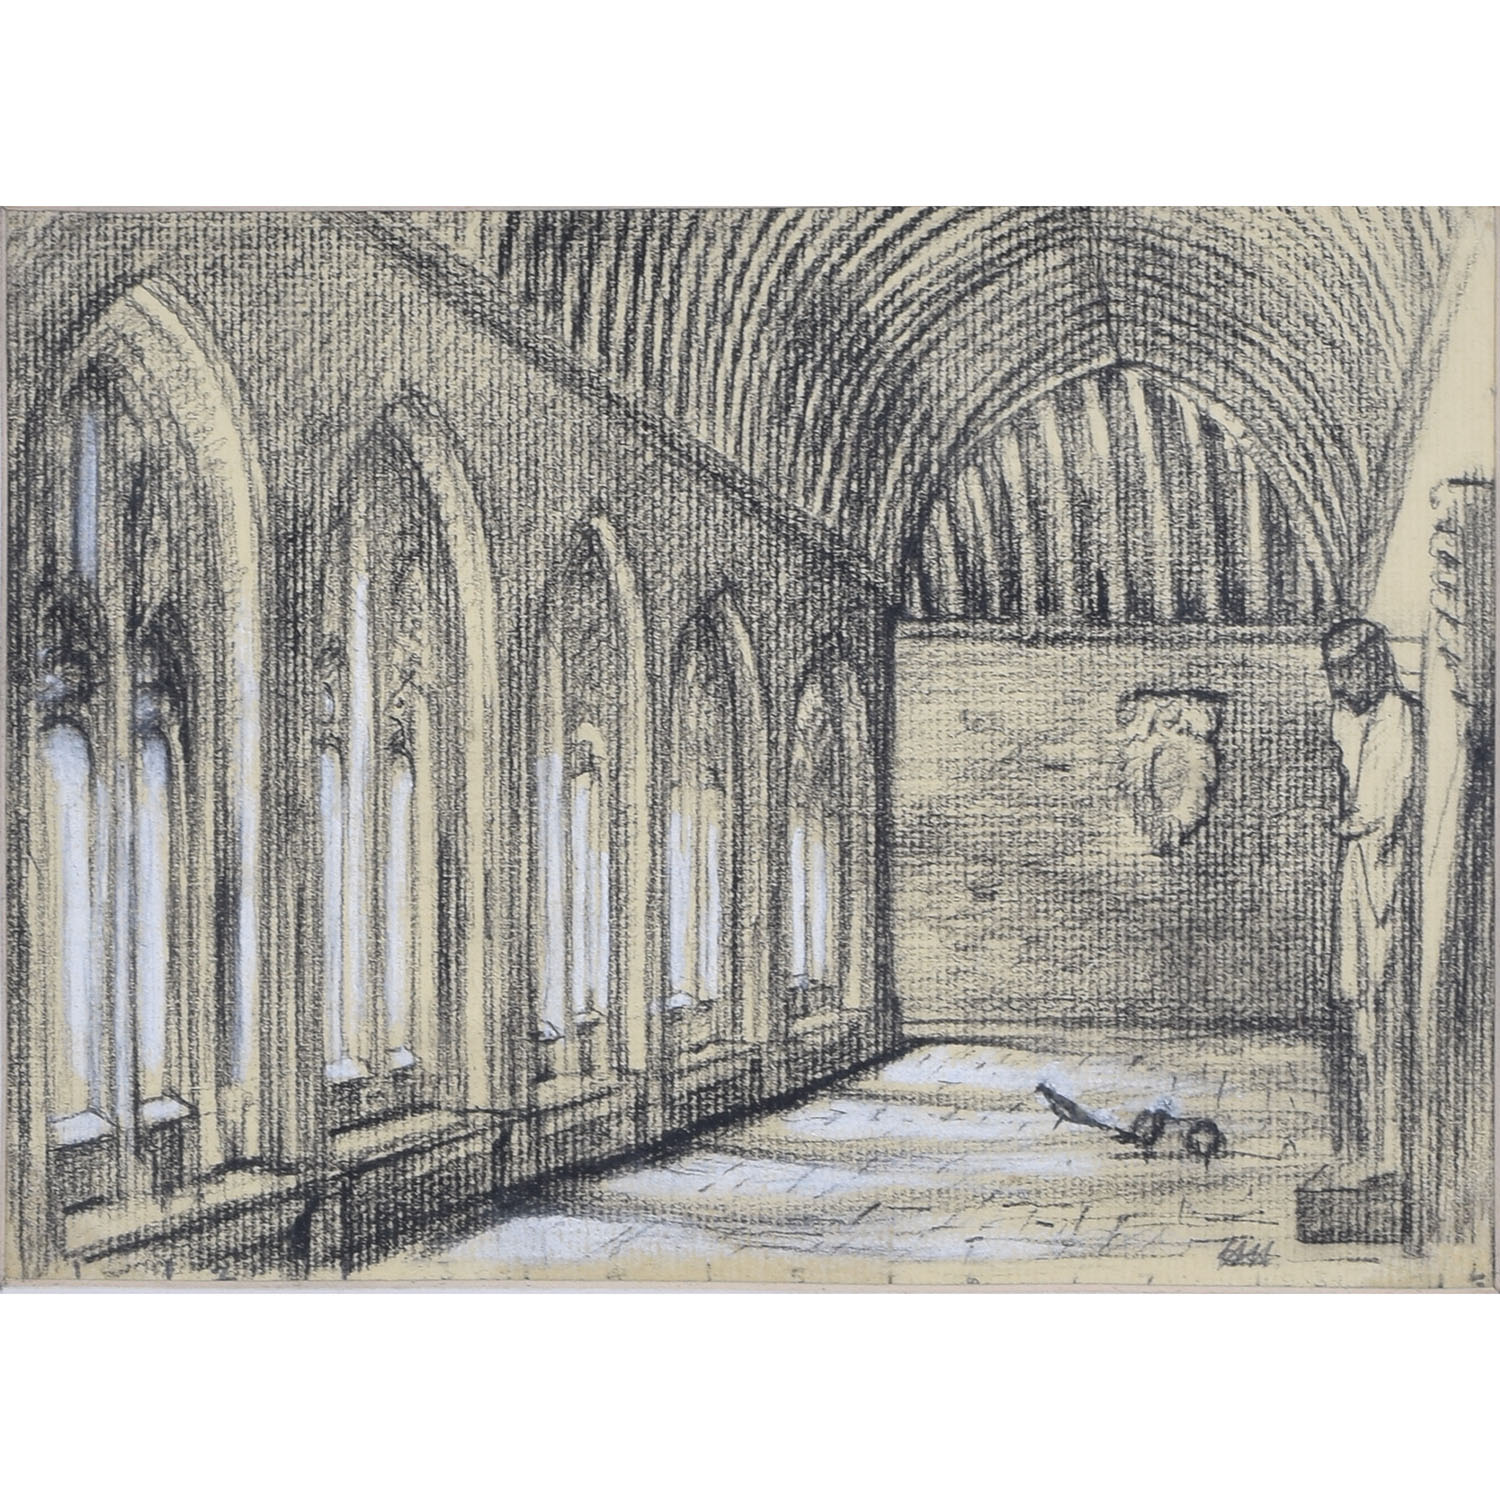 Hubert Hennes New College Oxford (sketch)